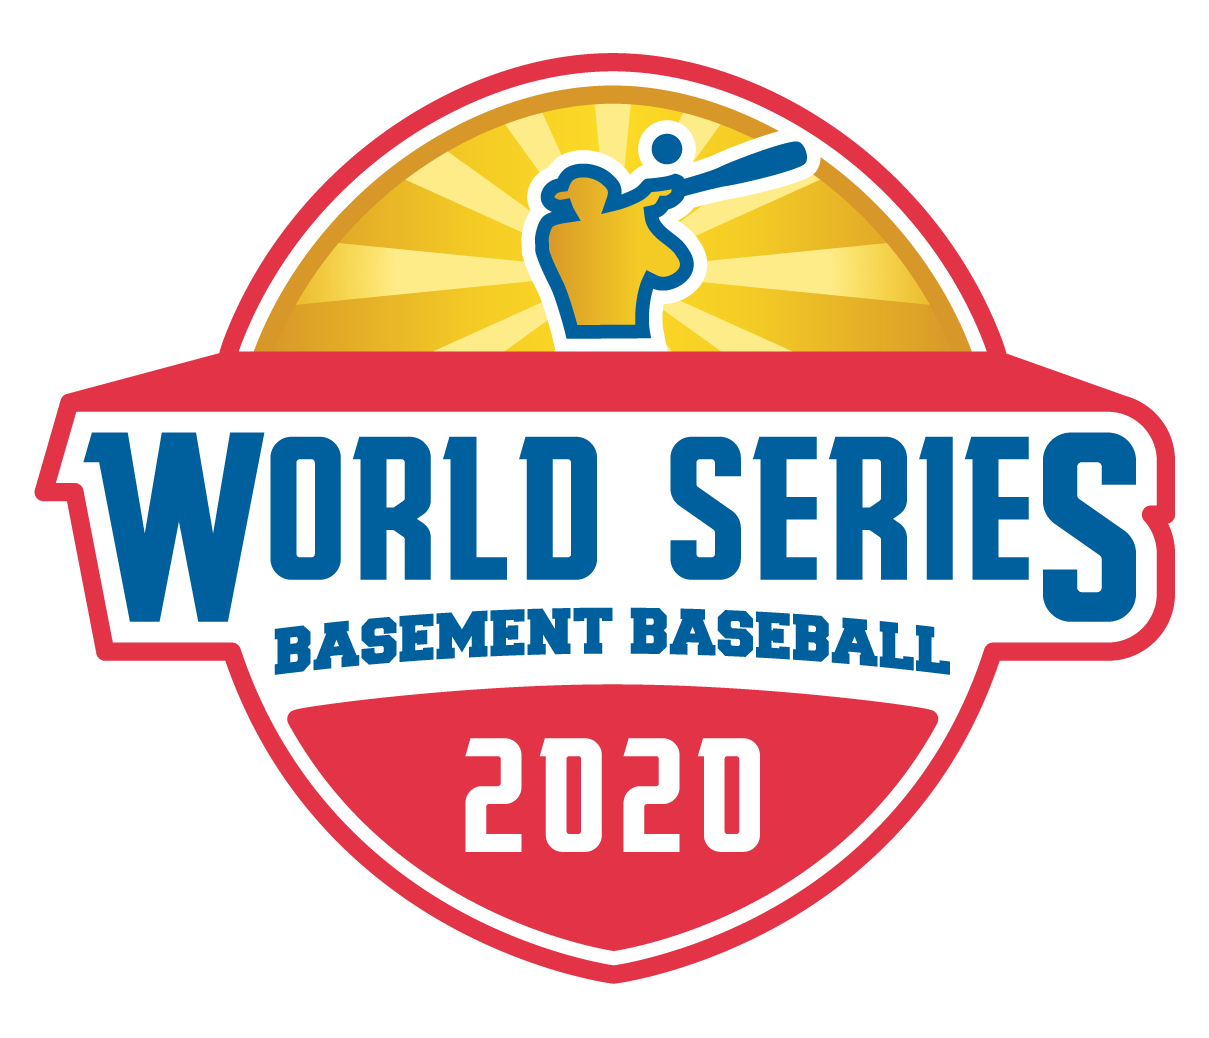 Basement Baseball world series 2020